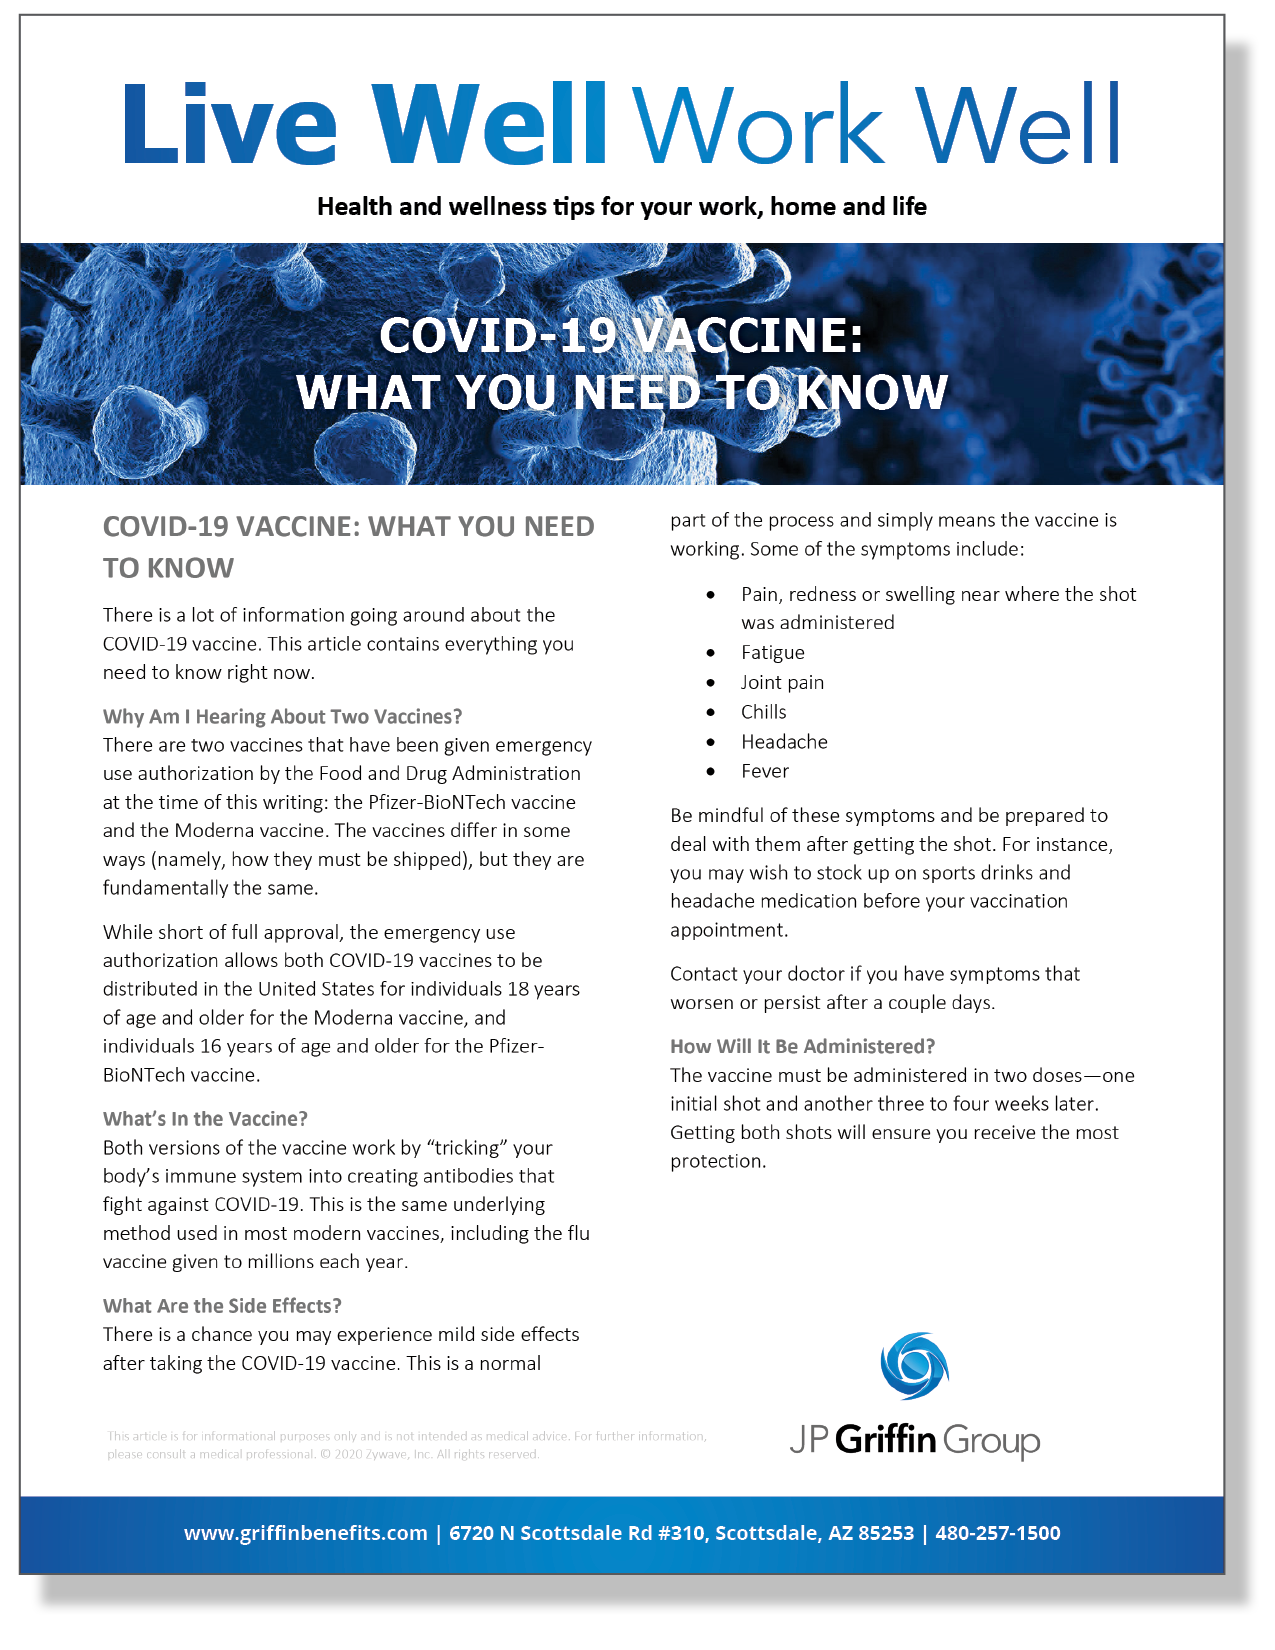 COVID-19 Vaccine - What You Need To Know